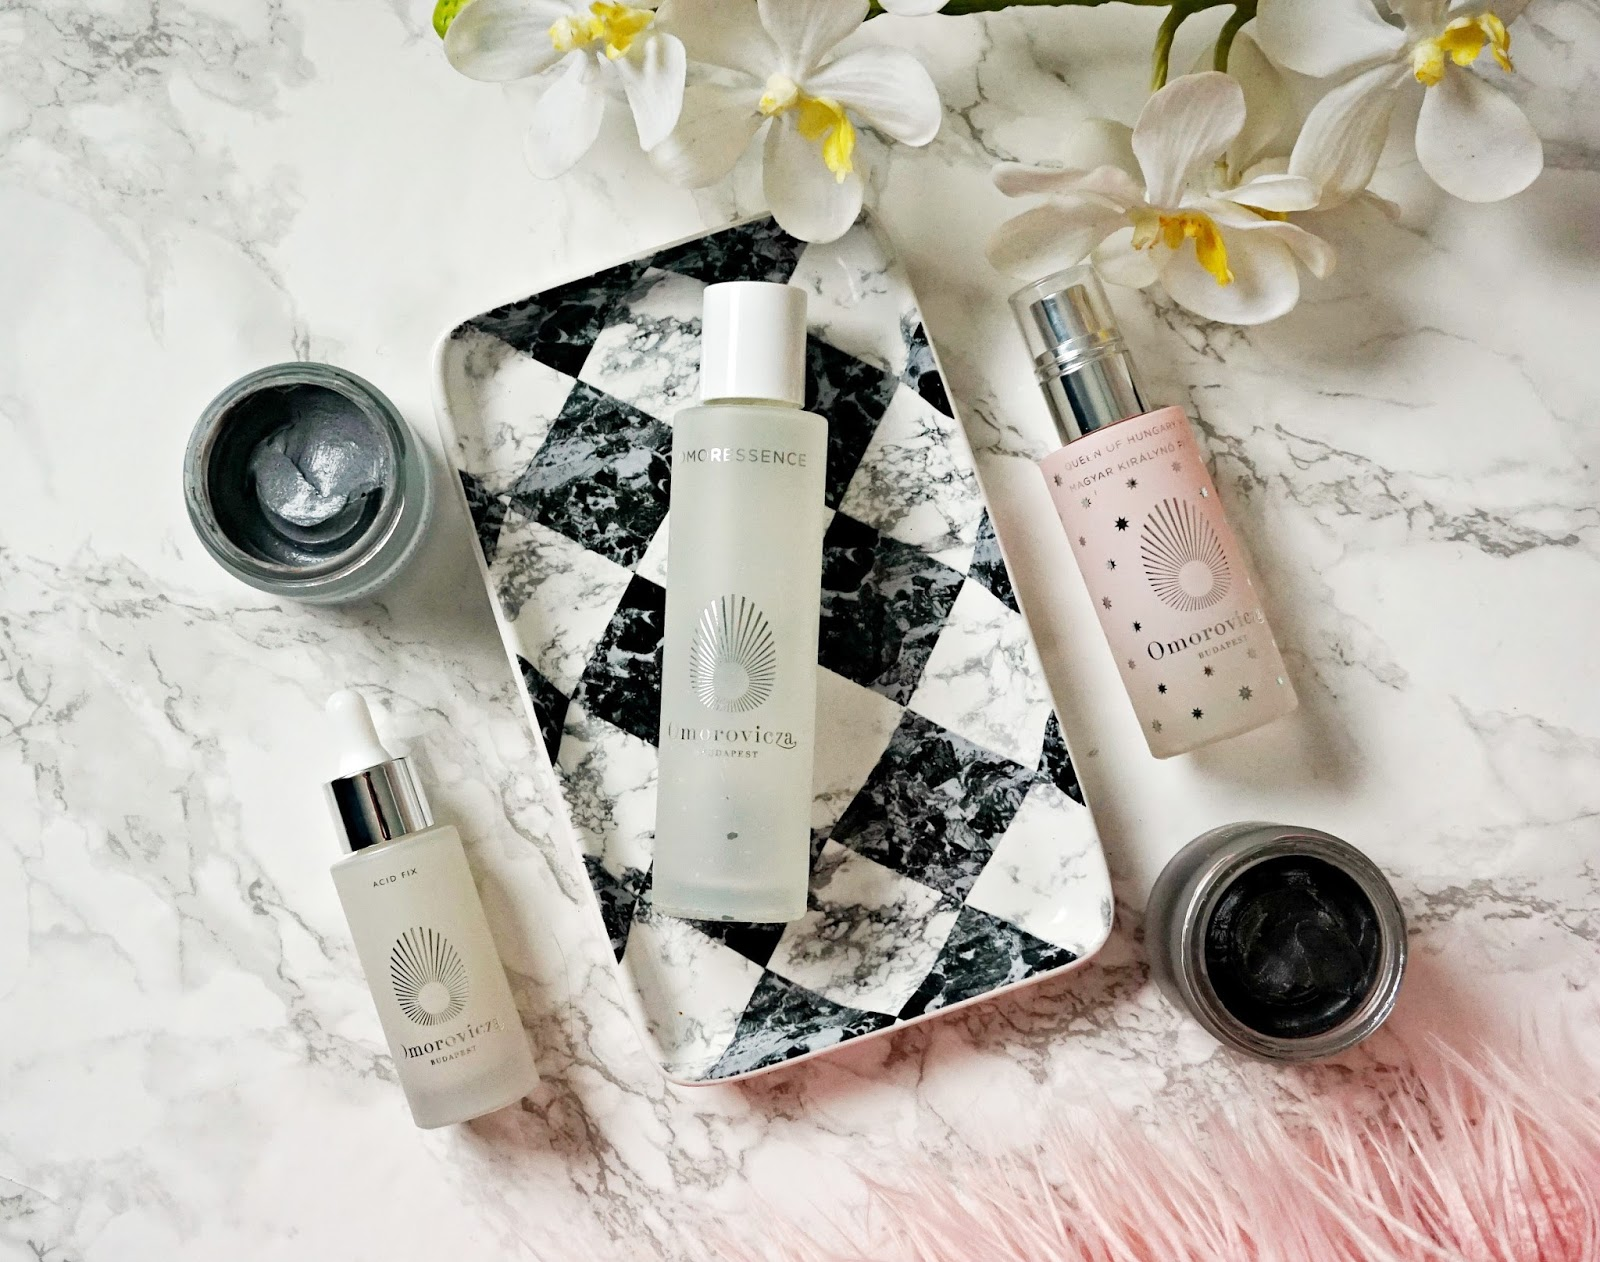 Top 5 Omorovicza products review